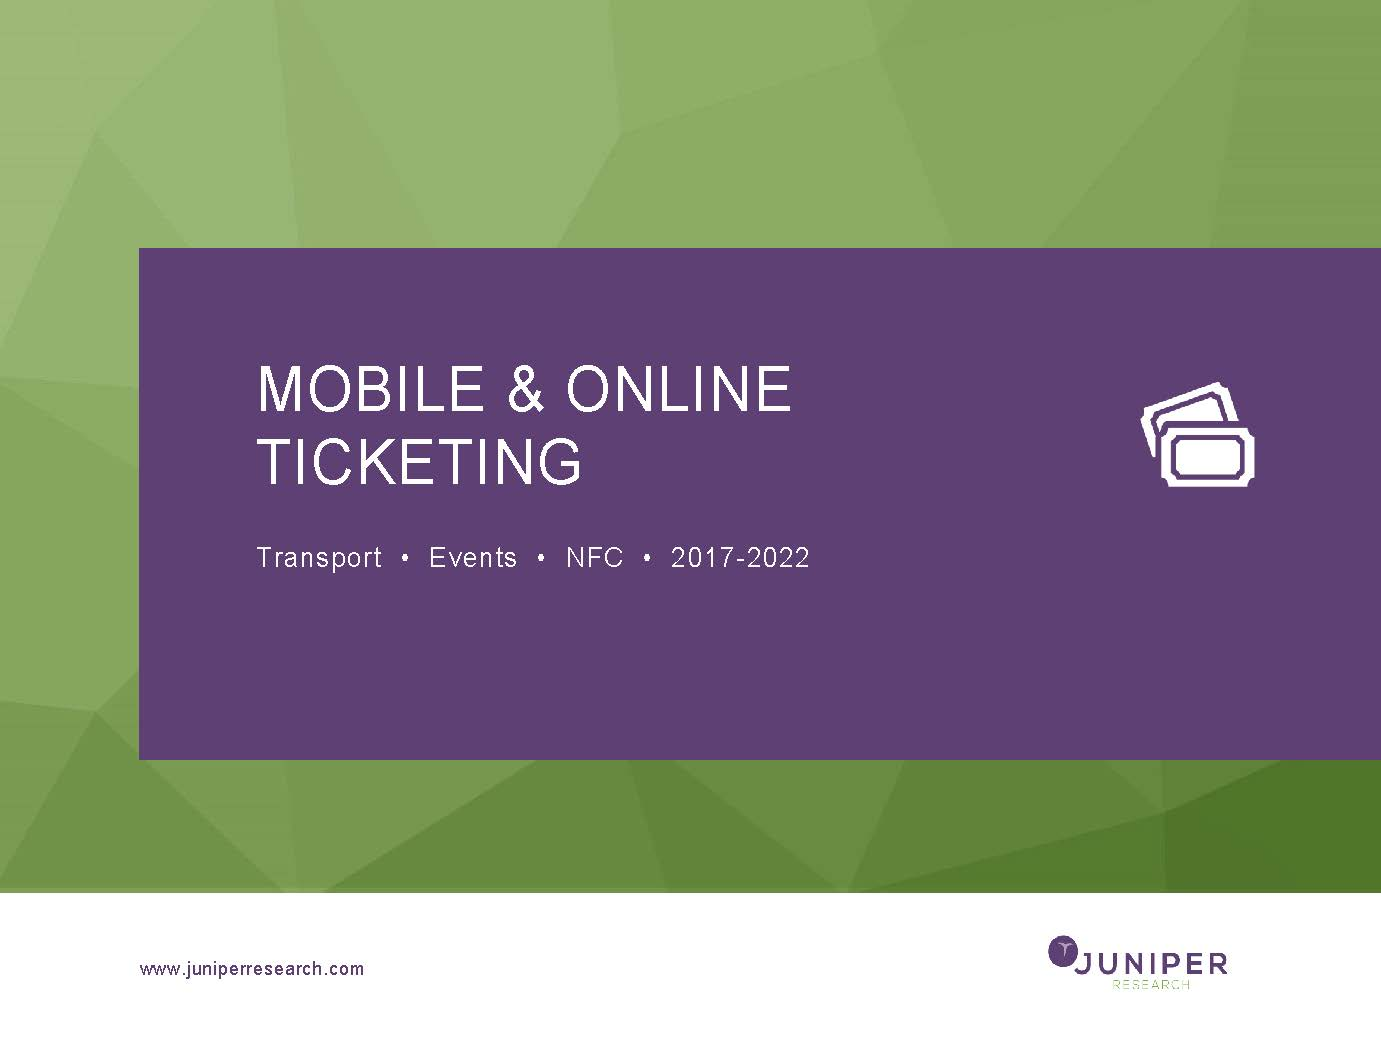 Mobile & Online Ticketing - Q1 2018